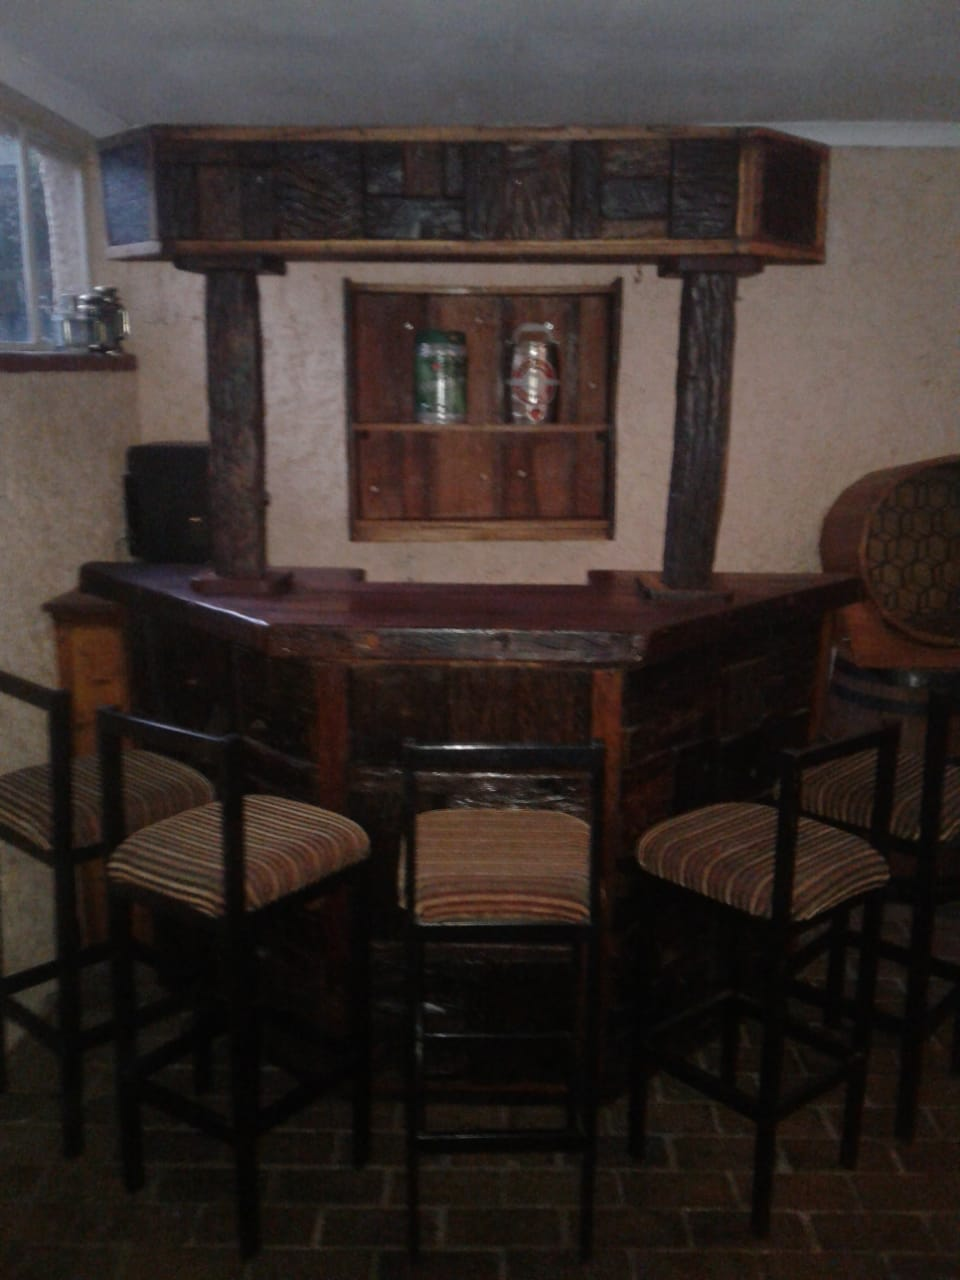 Sleeperwood bar set for sale junk mail